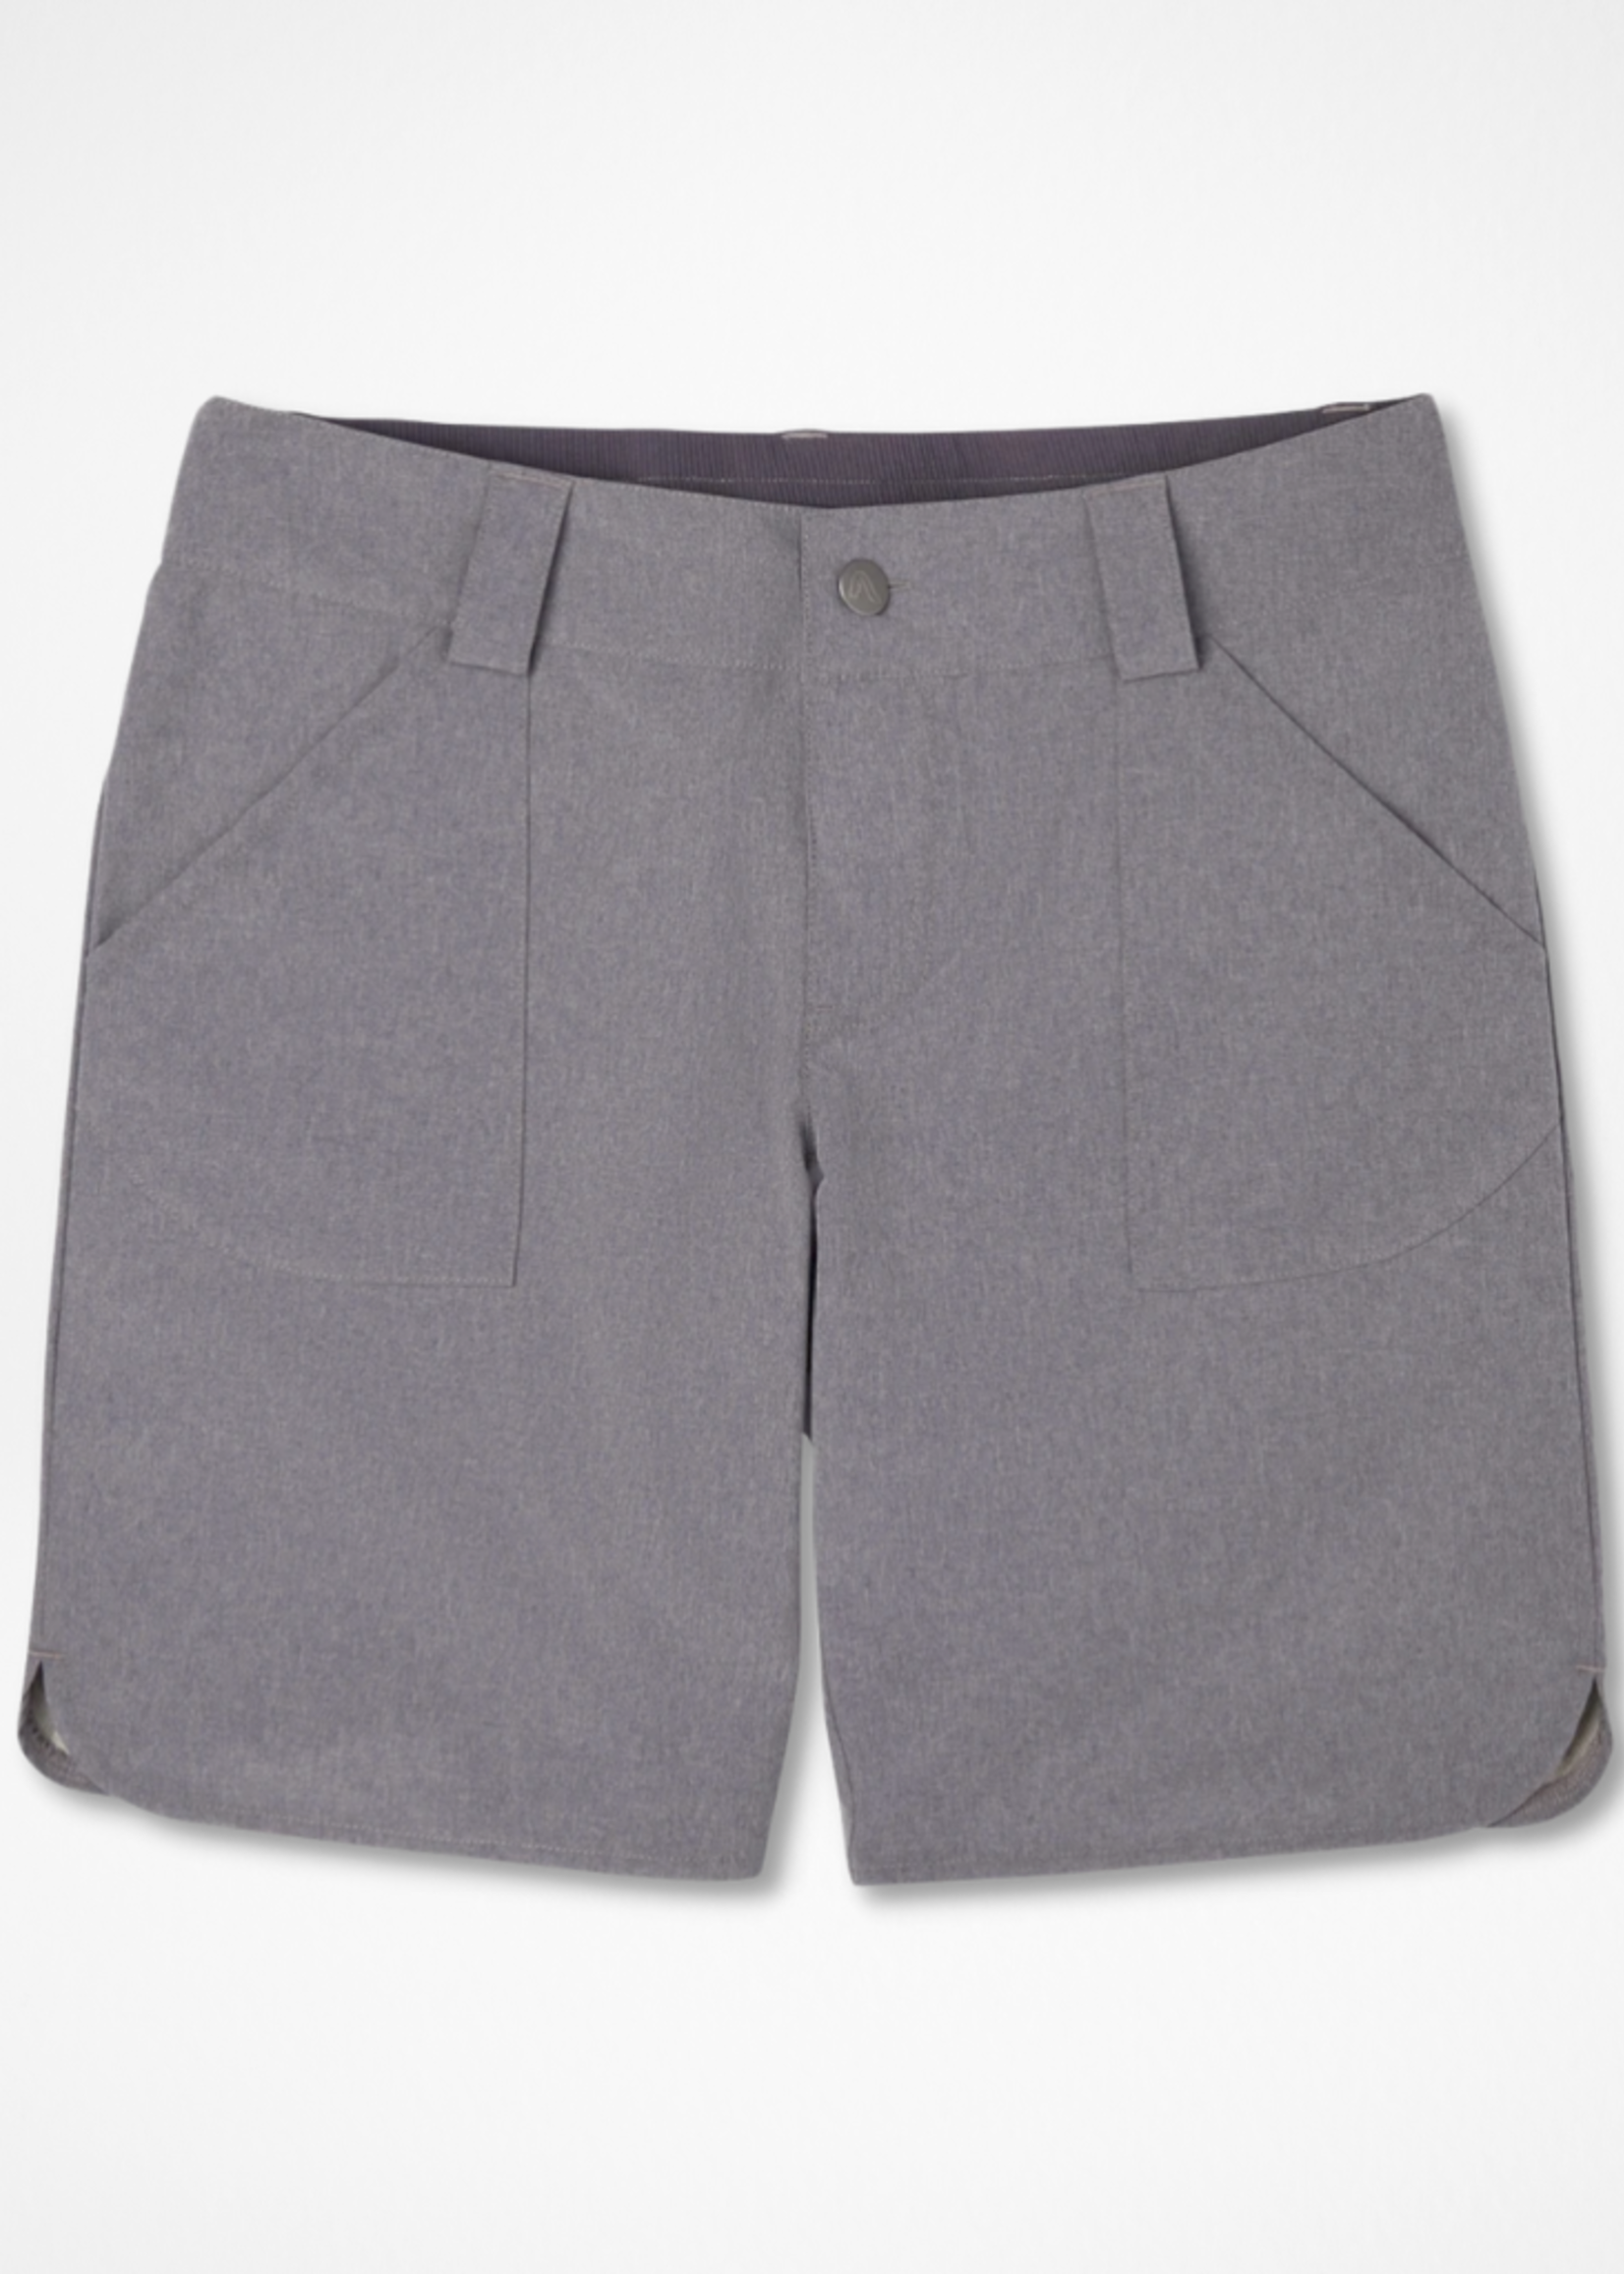 FLYLOW 21 FLYLOW SUNDOWN SHORT